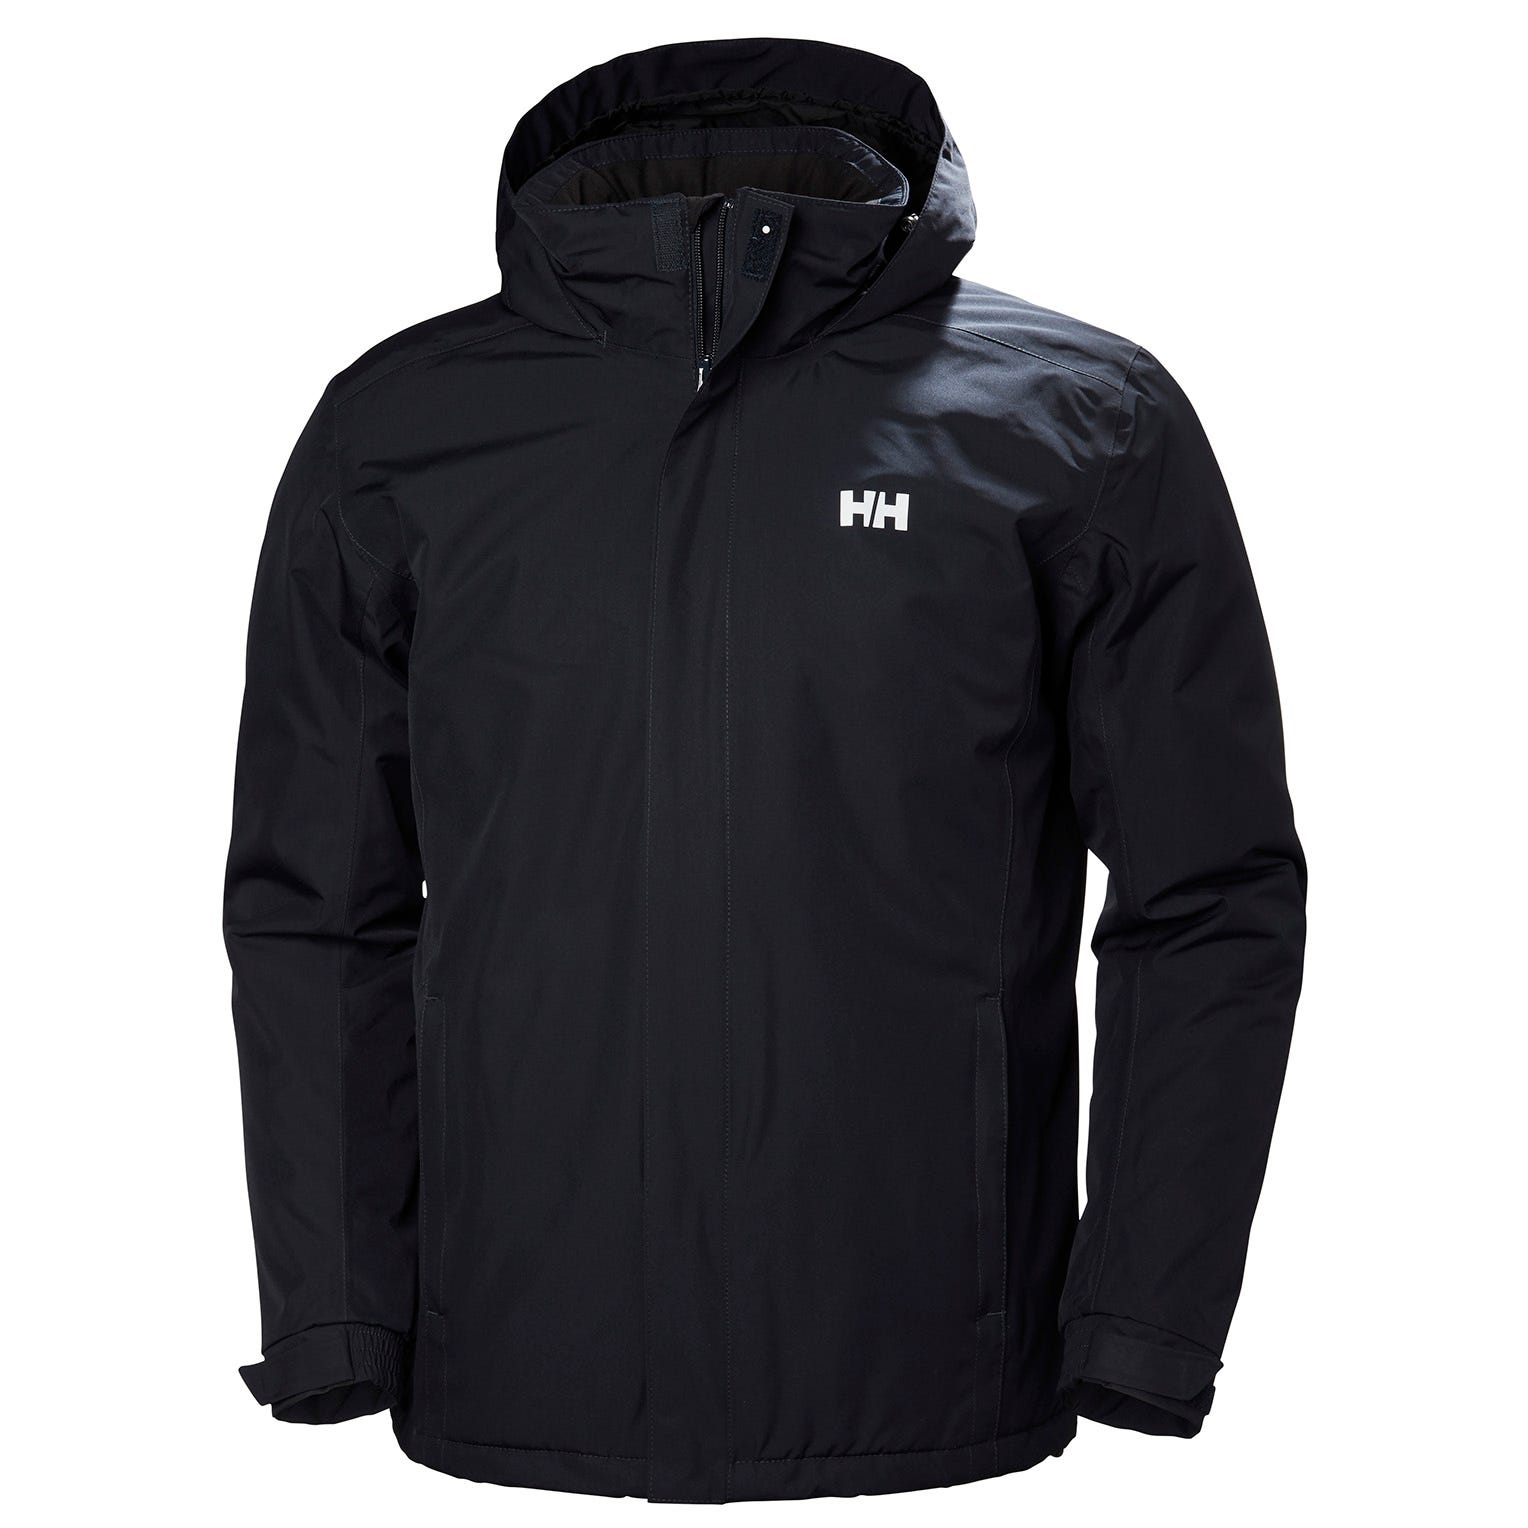 7a8e37e4 Dubliner Insulated Jacket | Warm Tailored Jacket | HH US